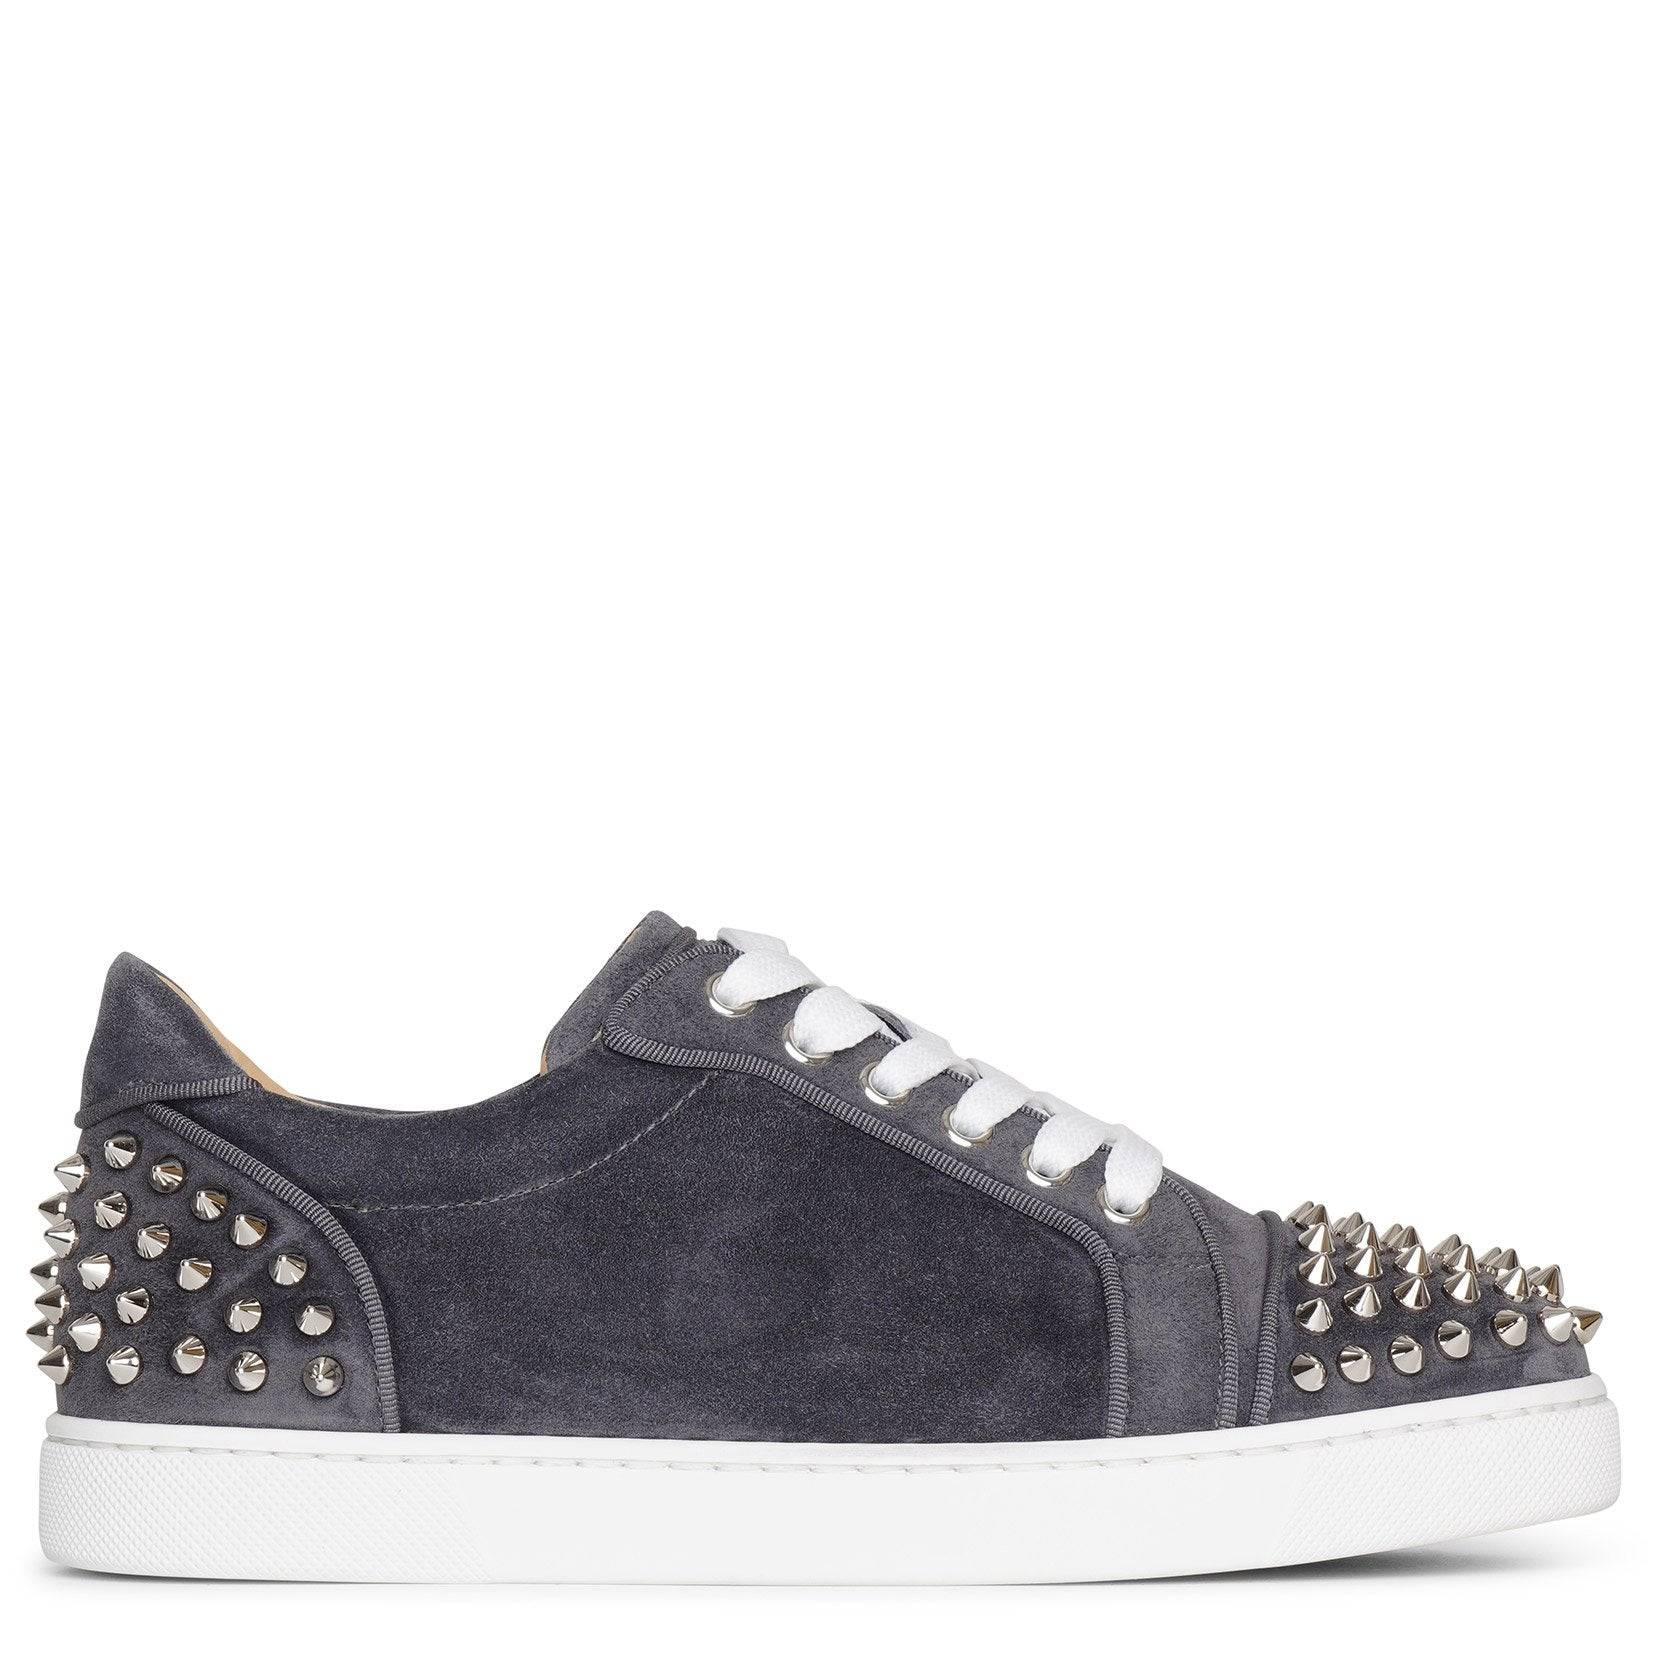 Christian Louboutin Vieira 2 flat smoky suede sneakers  - grey - female - Size: 36